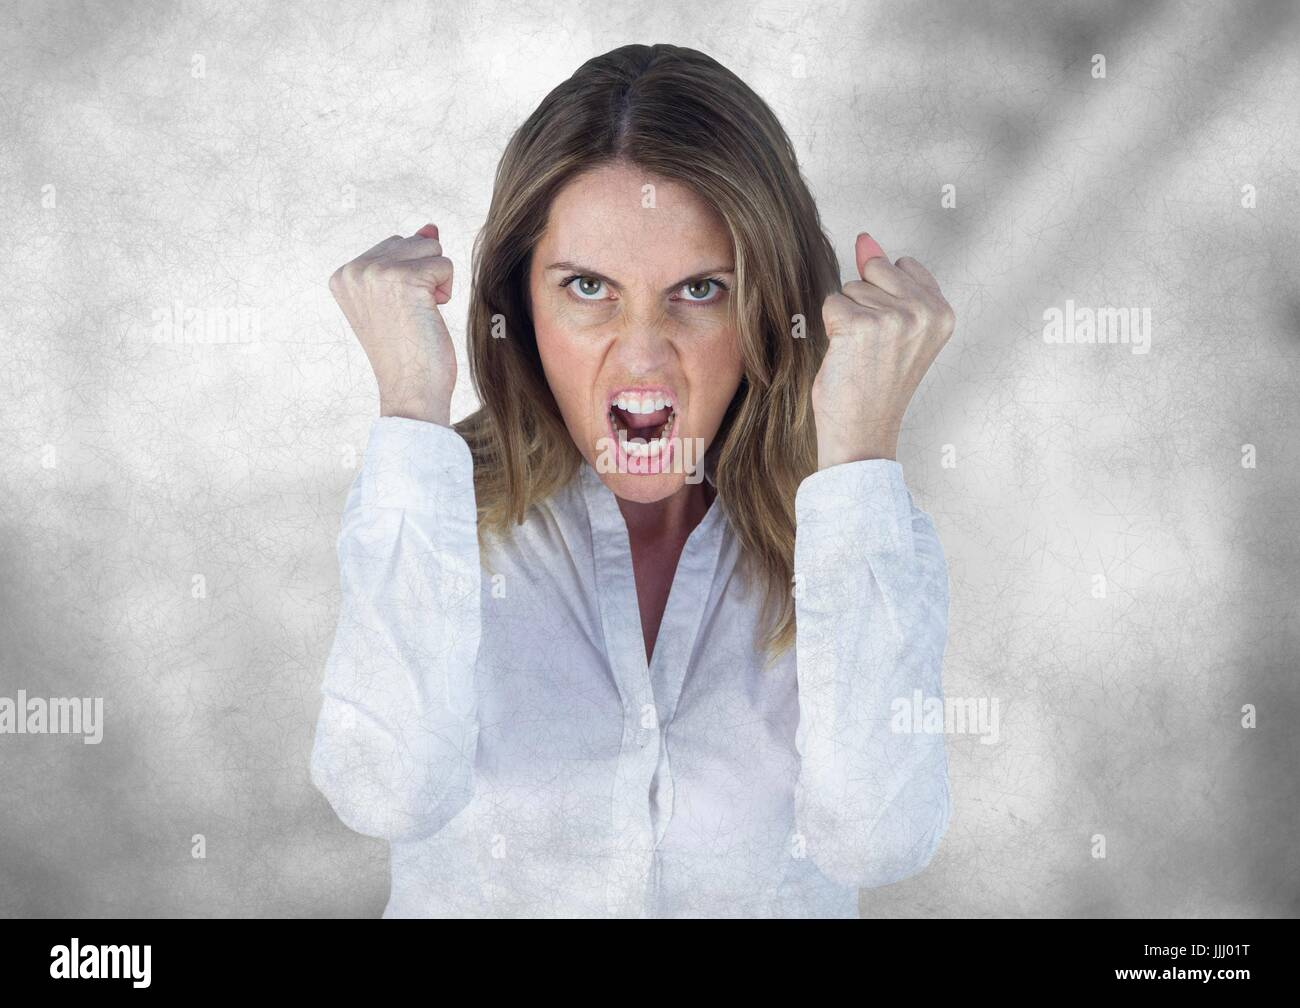 Angry business woman against blurry grey stairs with grunge overlay - Stock Image